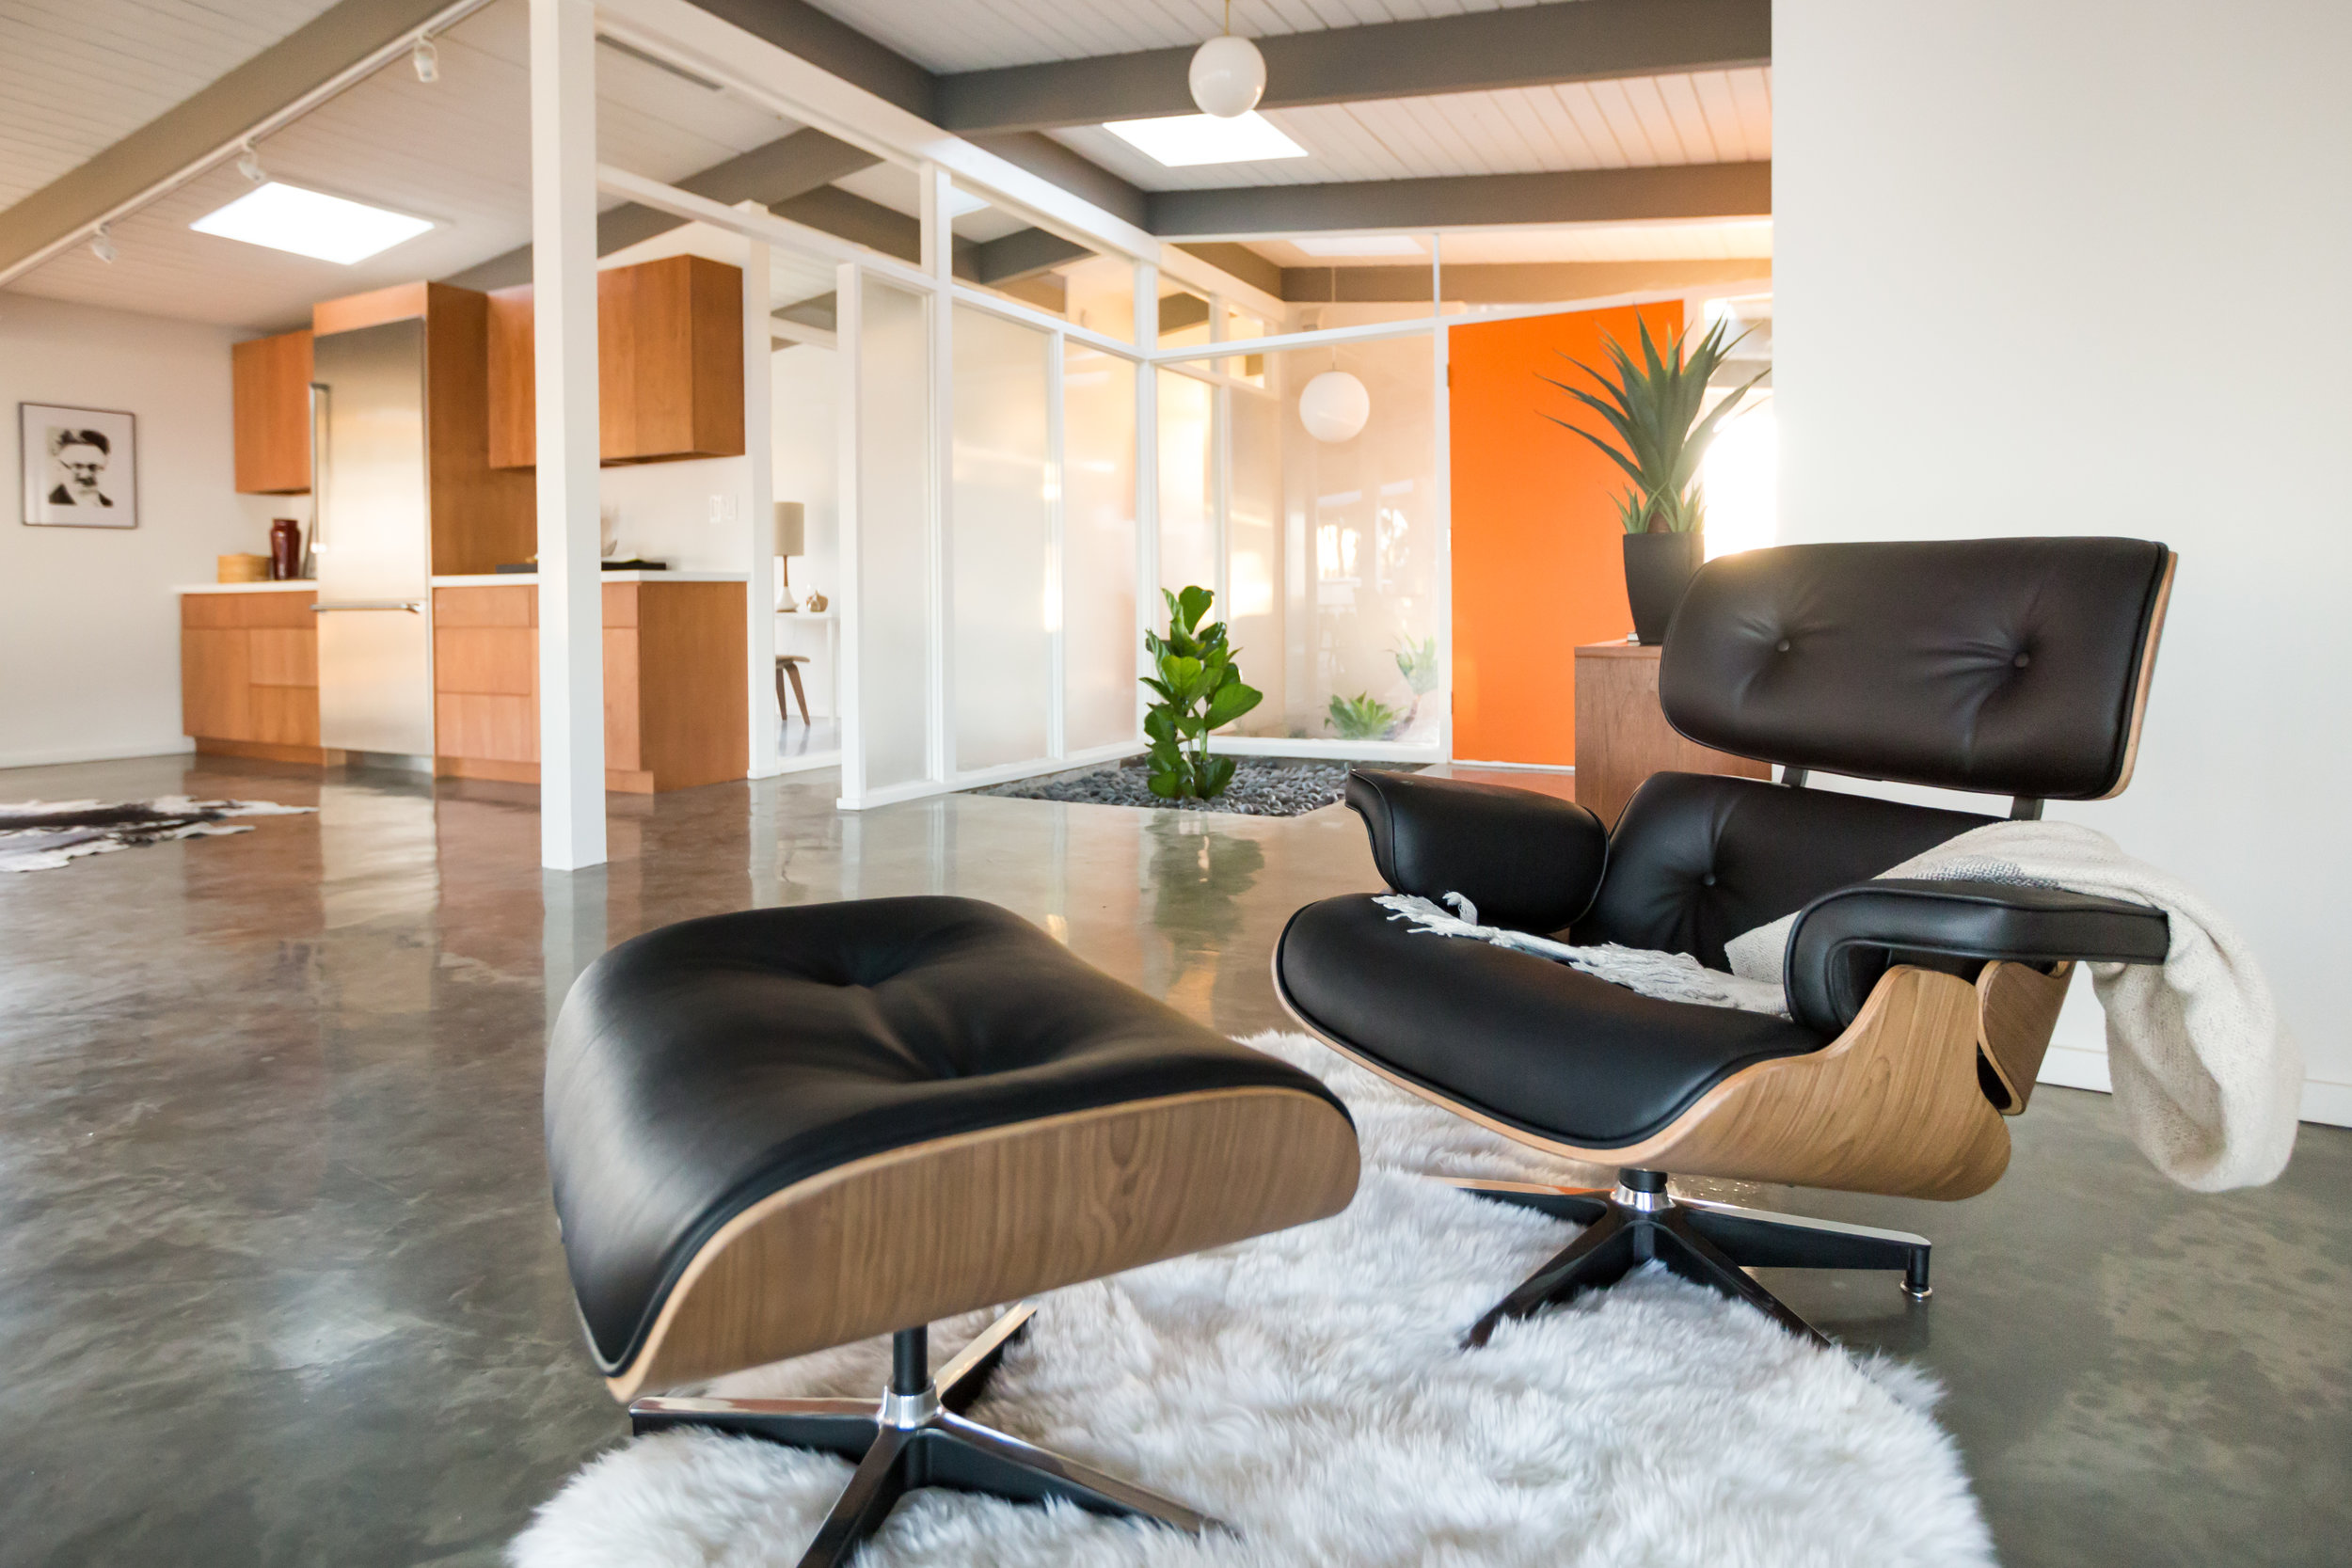 An Eames replica lounger and ottoman because... well, just because.